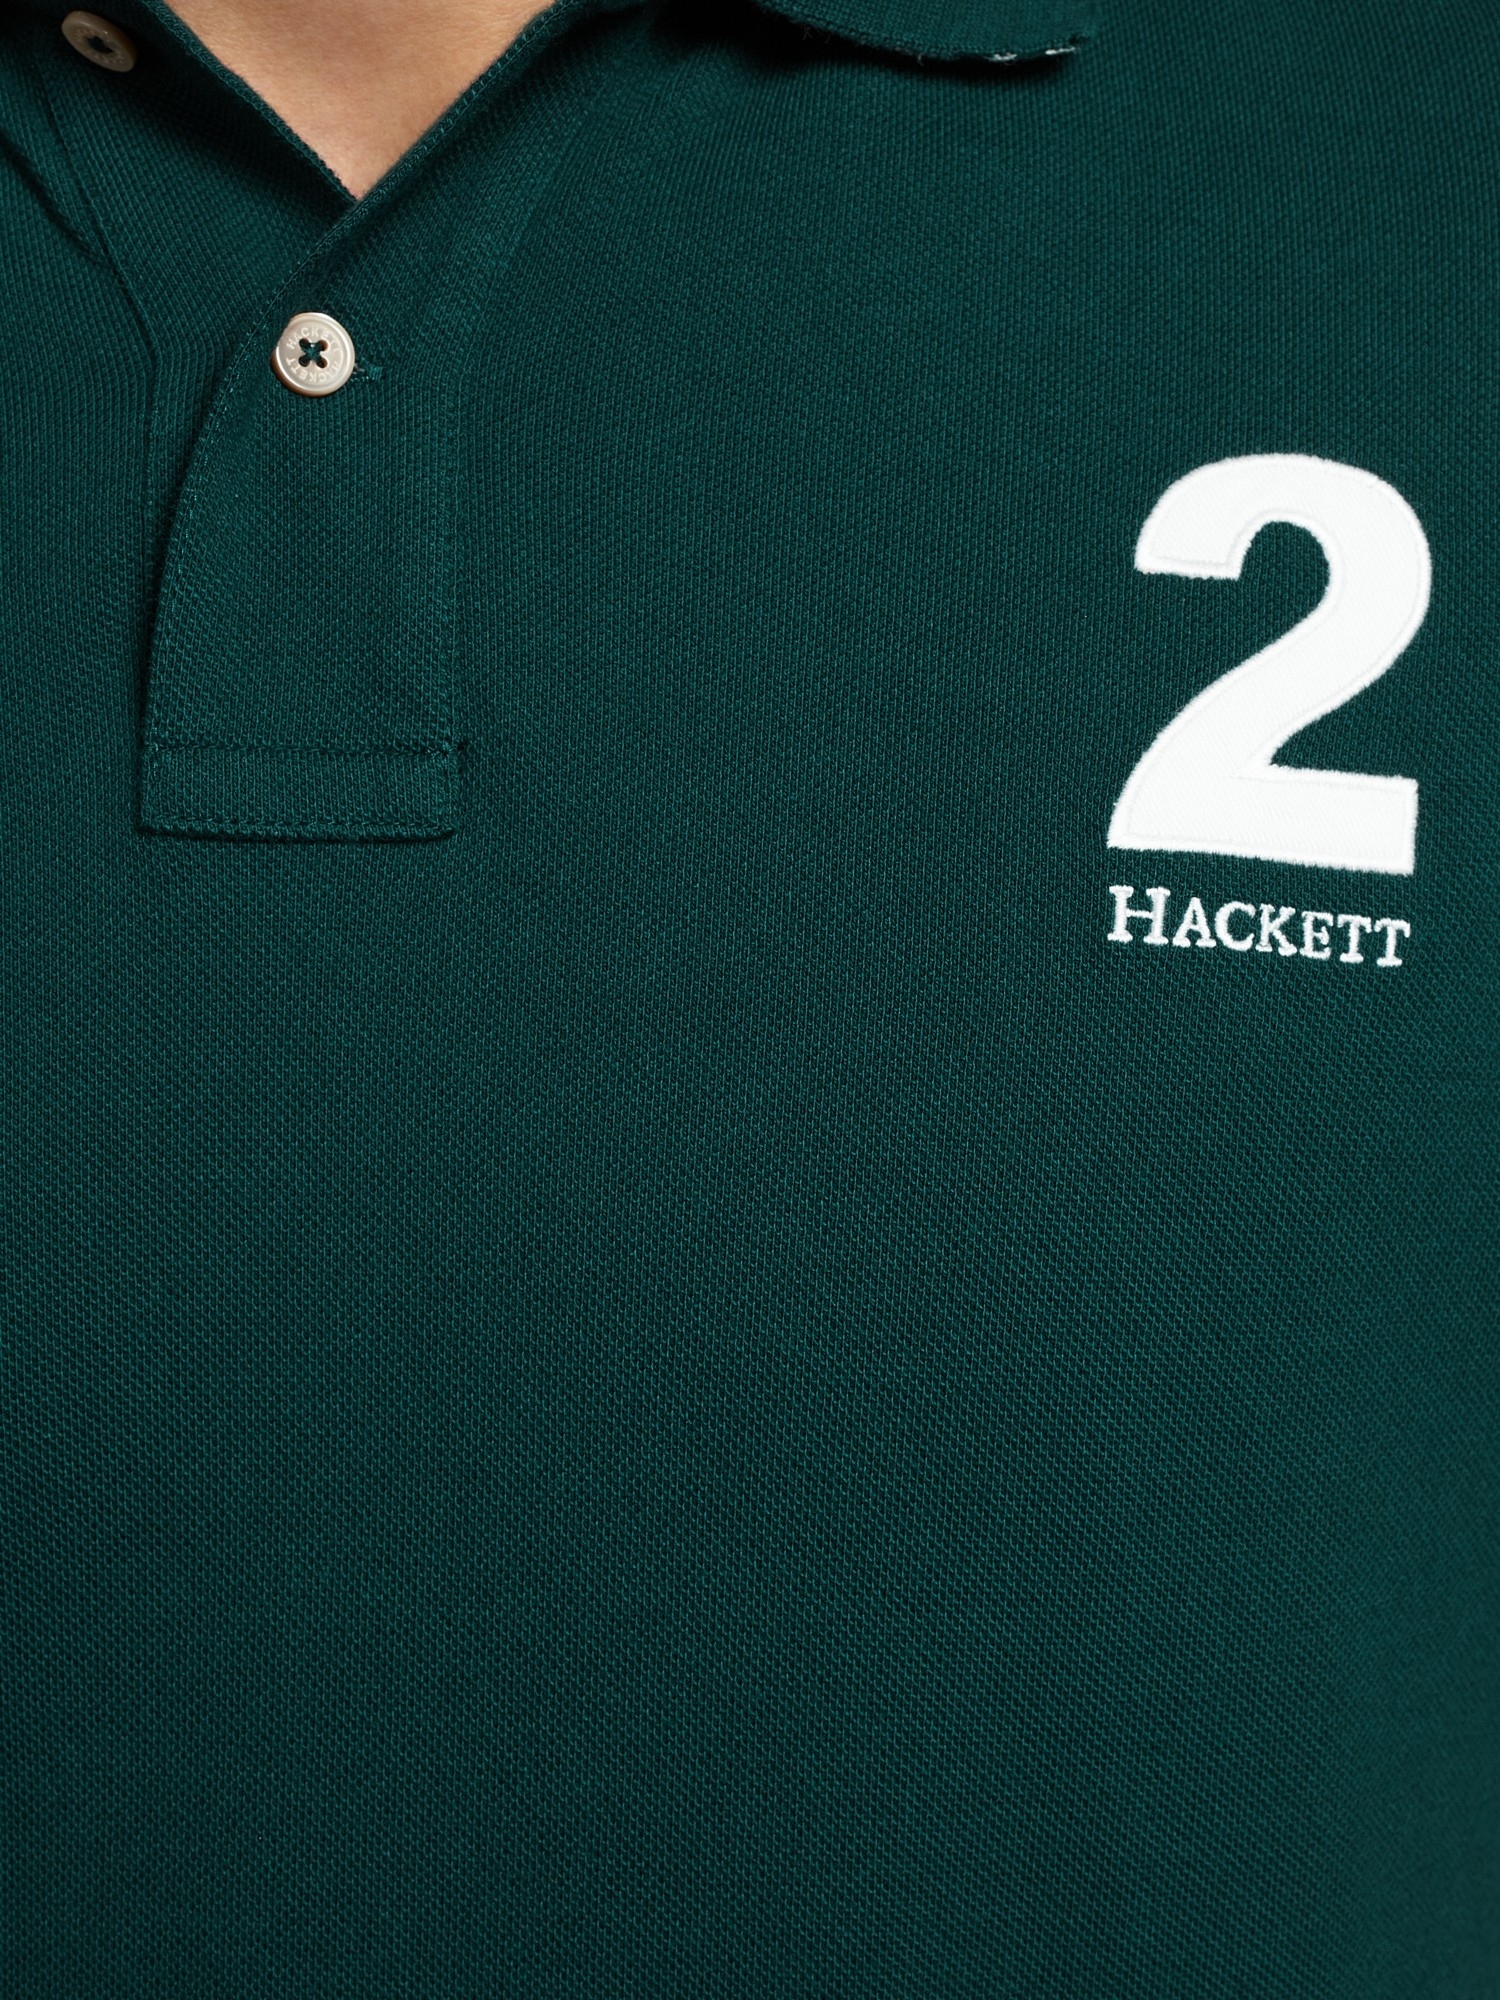 Hackett Number 2 Short Sleeve Polo Shirt In Green For Men